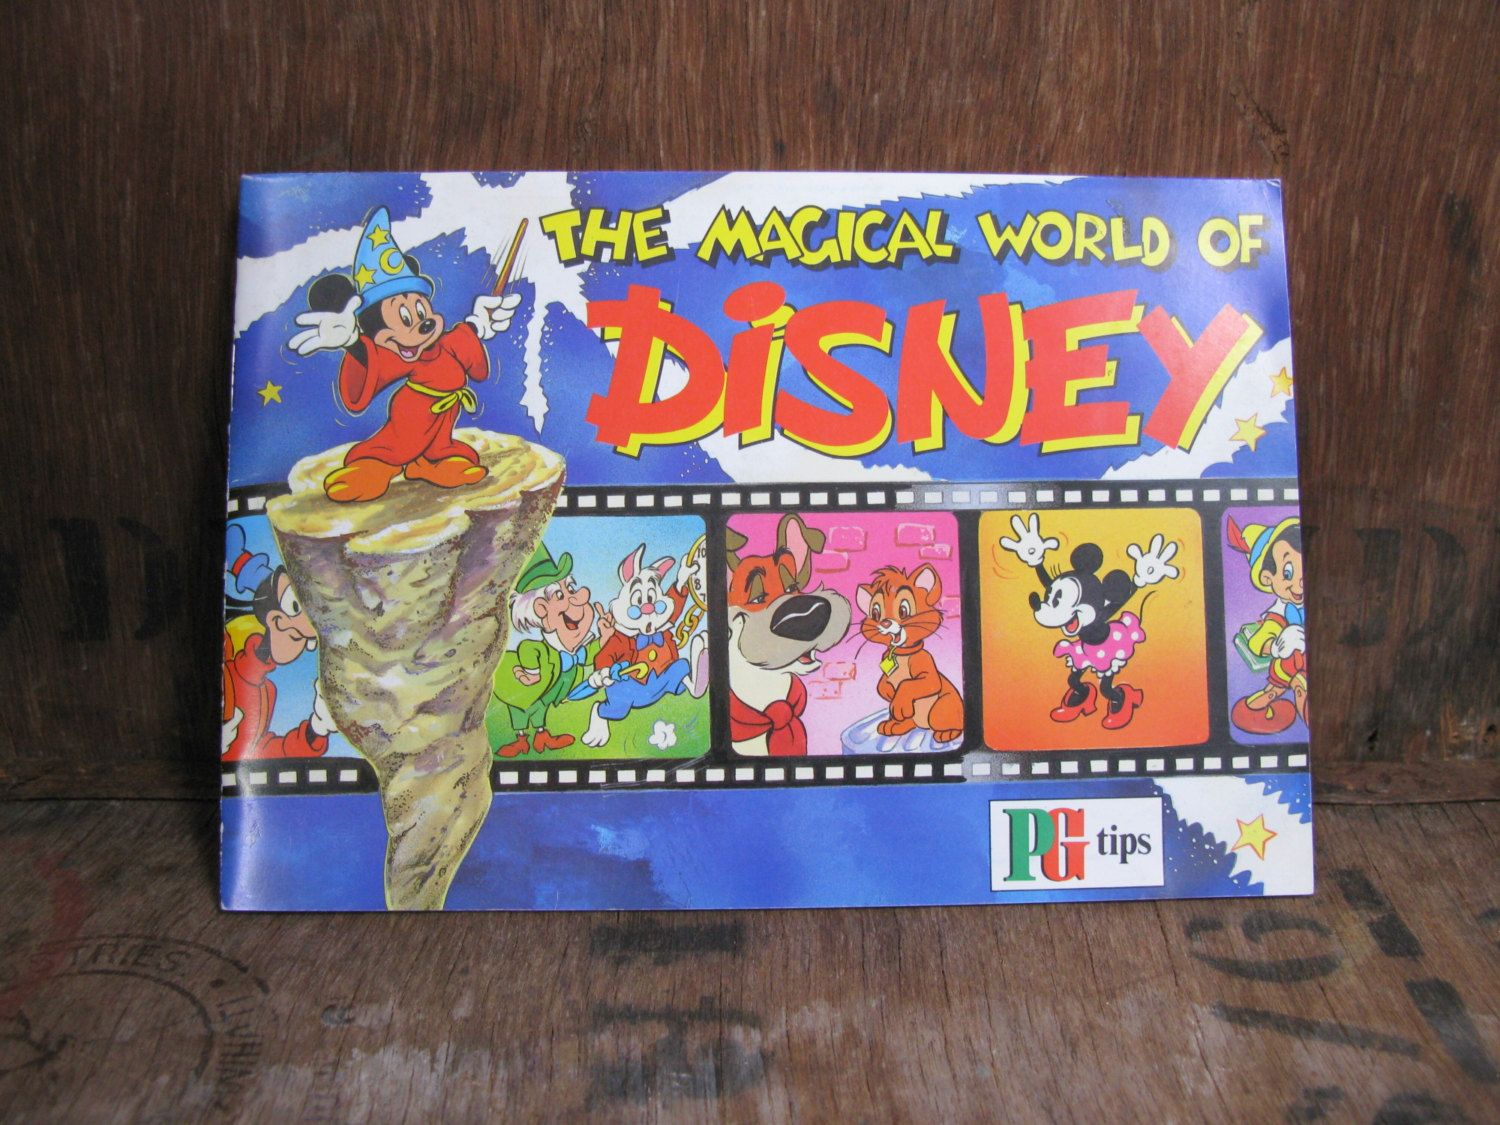 Disney Picture Cards - PG Tips Tea Cards - Disney Stickers - Disney Collectable - Vintage Disney - Disneyana - Disney Collectible by MissieMooVintageRoom on Etsy